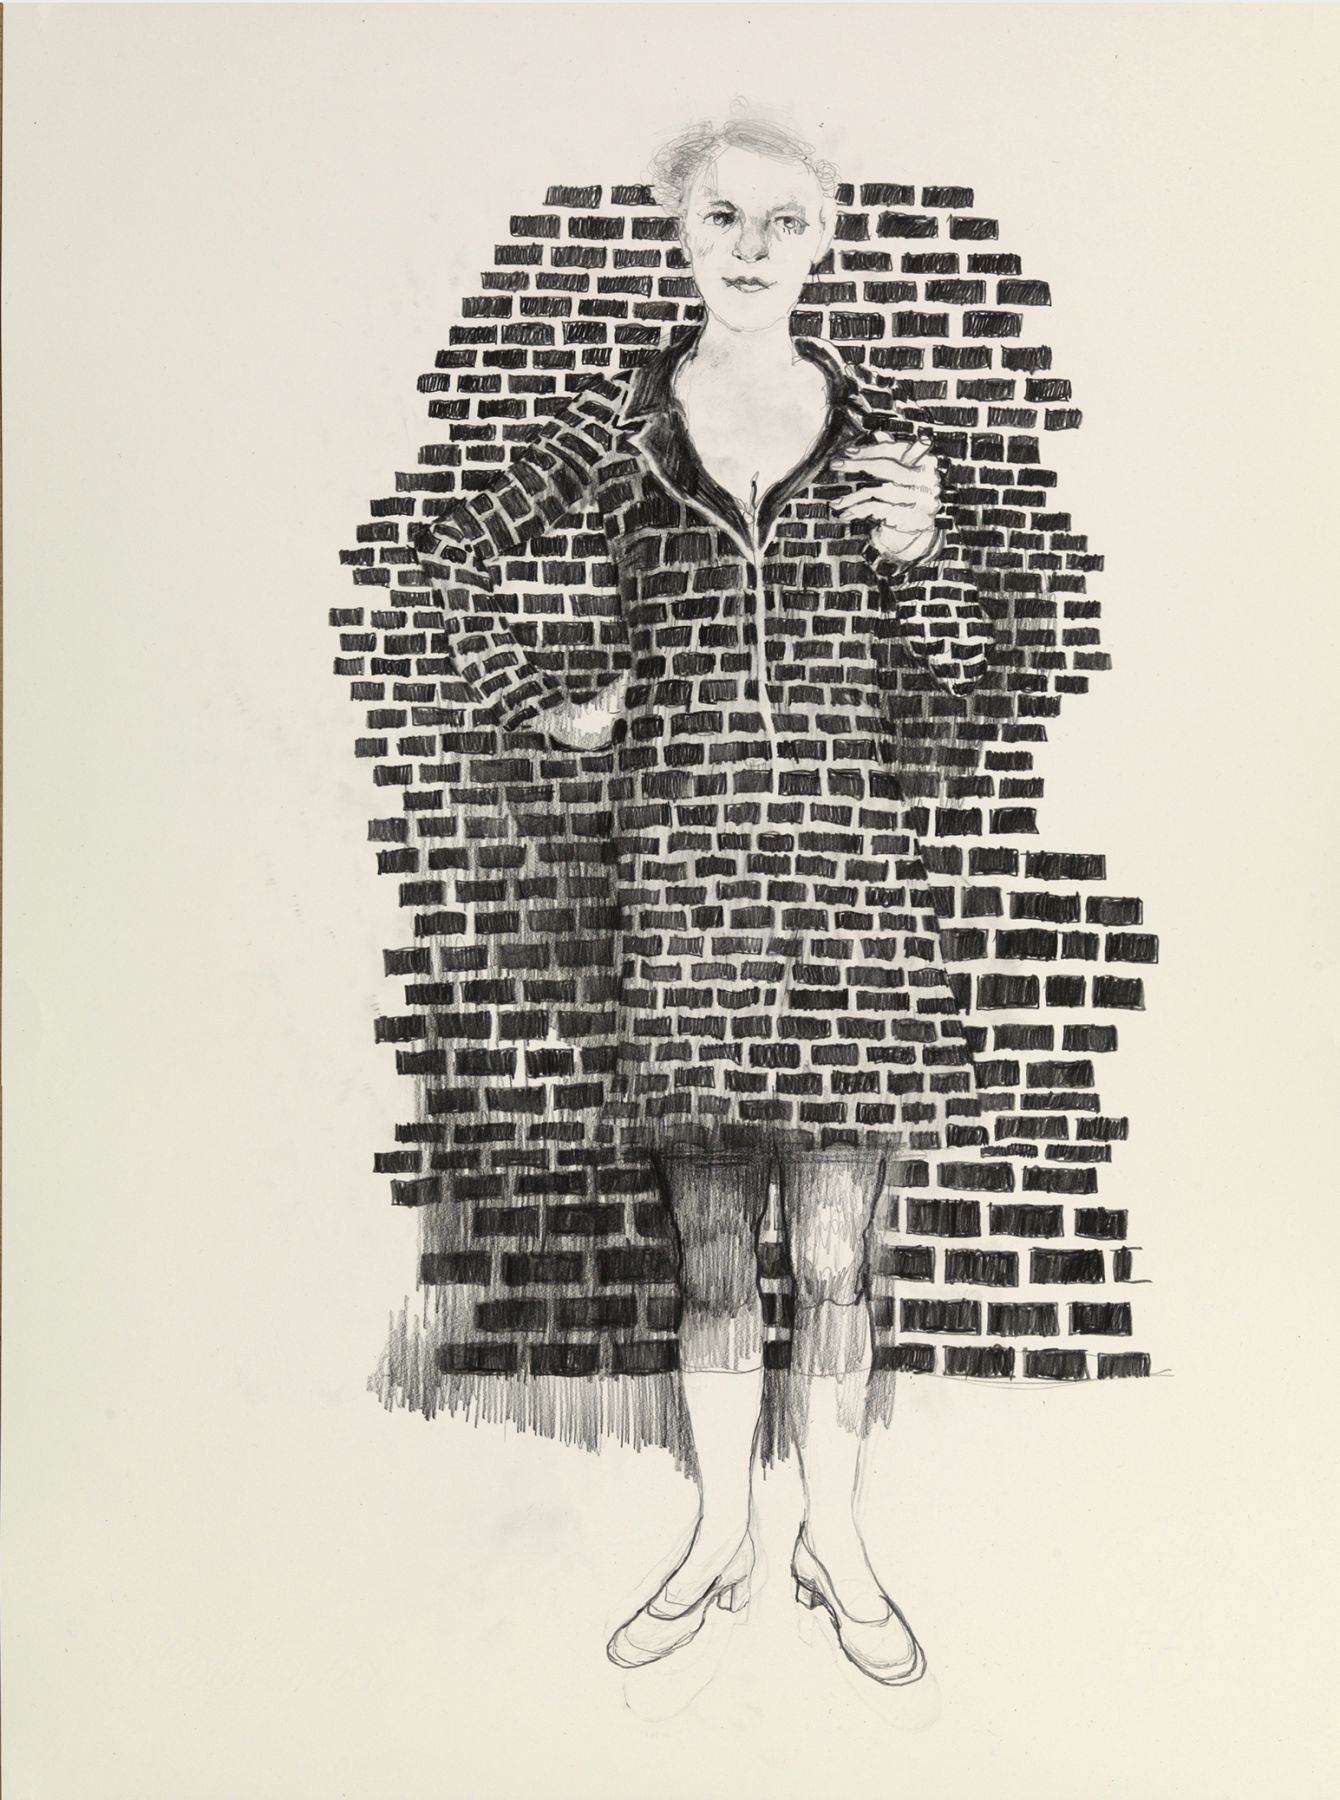 graphite on paper work by Hannah van Bart of a woman against a brick wall